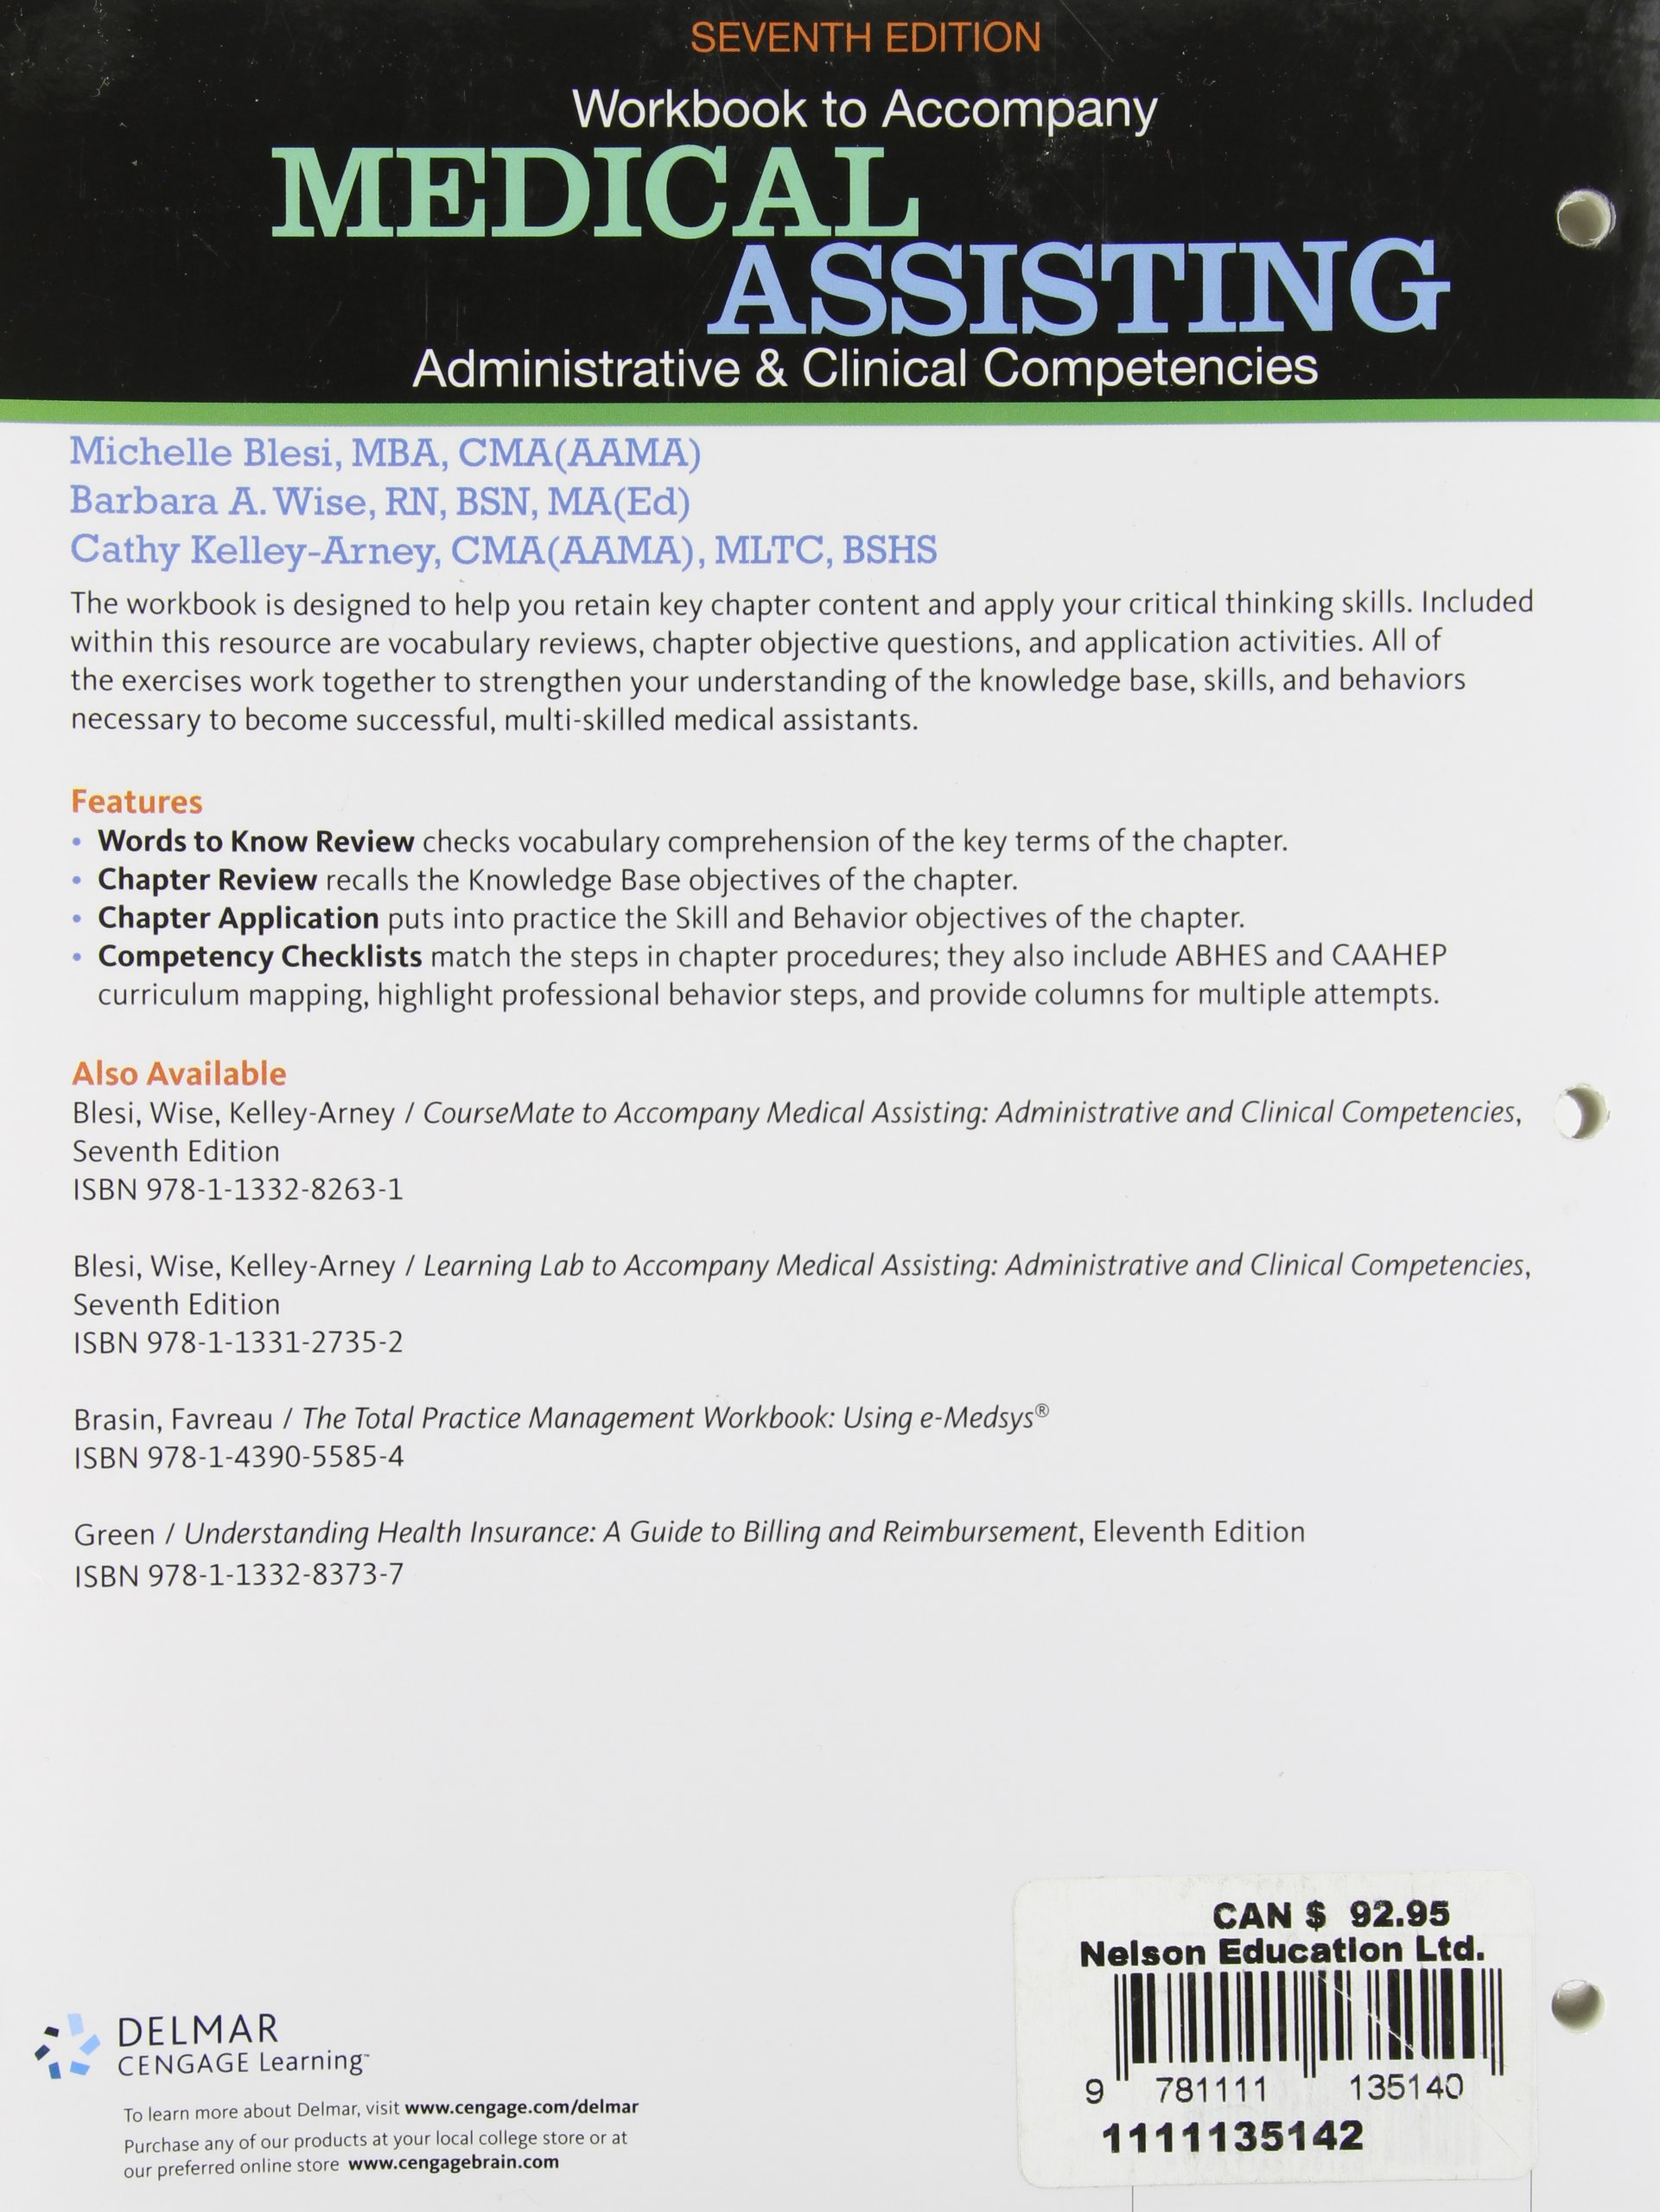 Workbook For Blesi Wise Kelly Arney S Medical Assisting